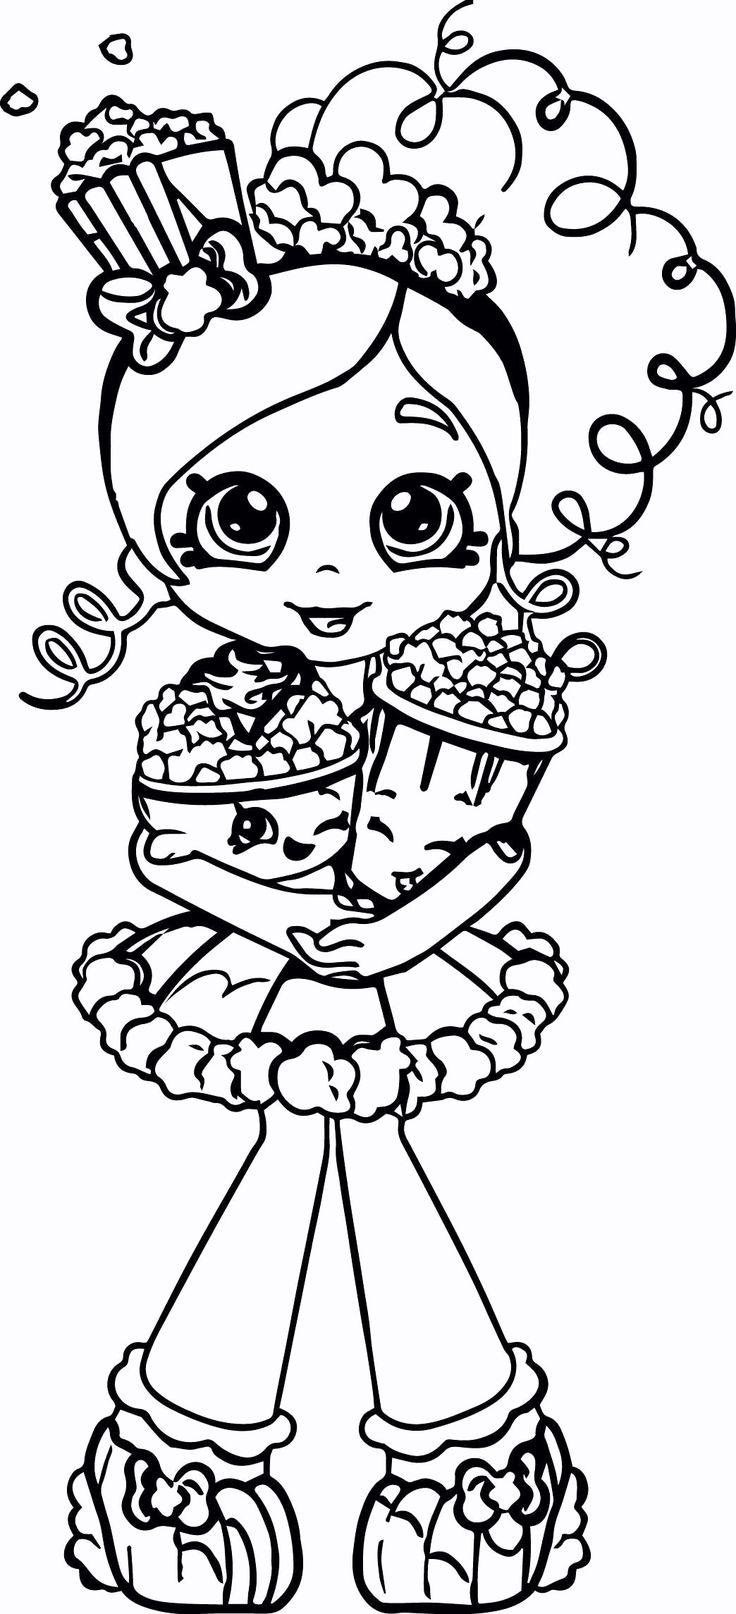 Free Shopkins Coloring Pages Printable Shopkin coloring